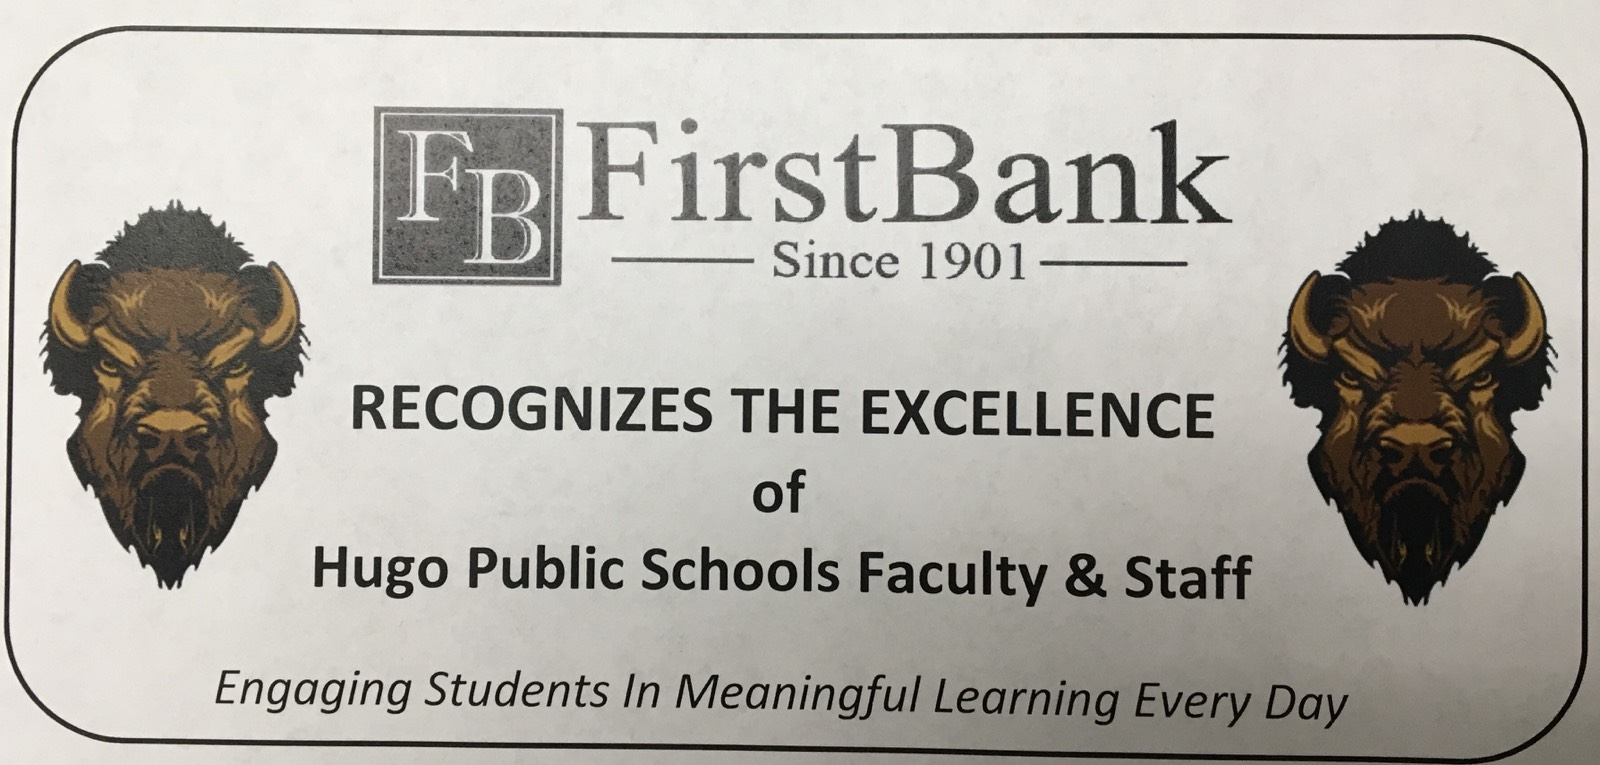 First Bank Recognizes the excellence of Hugo Public Schools Faculty and Staff